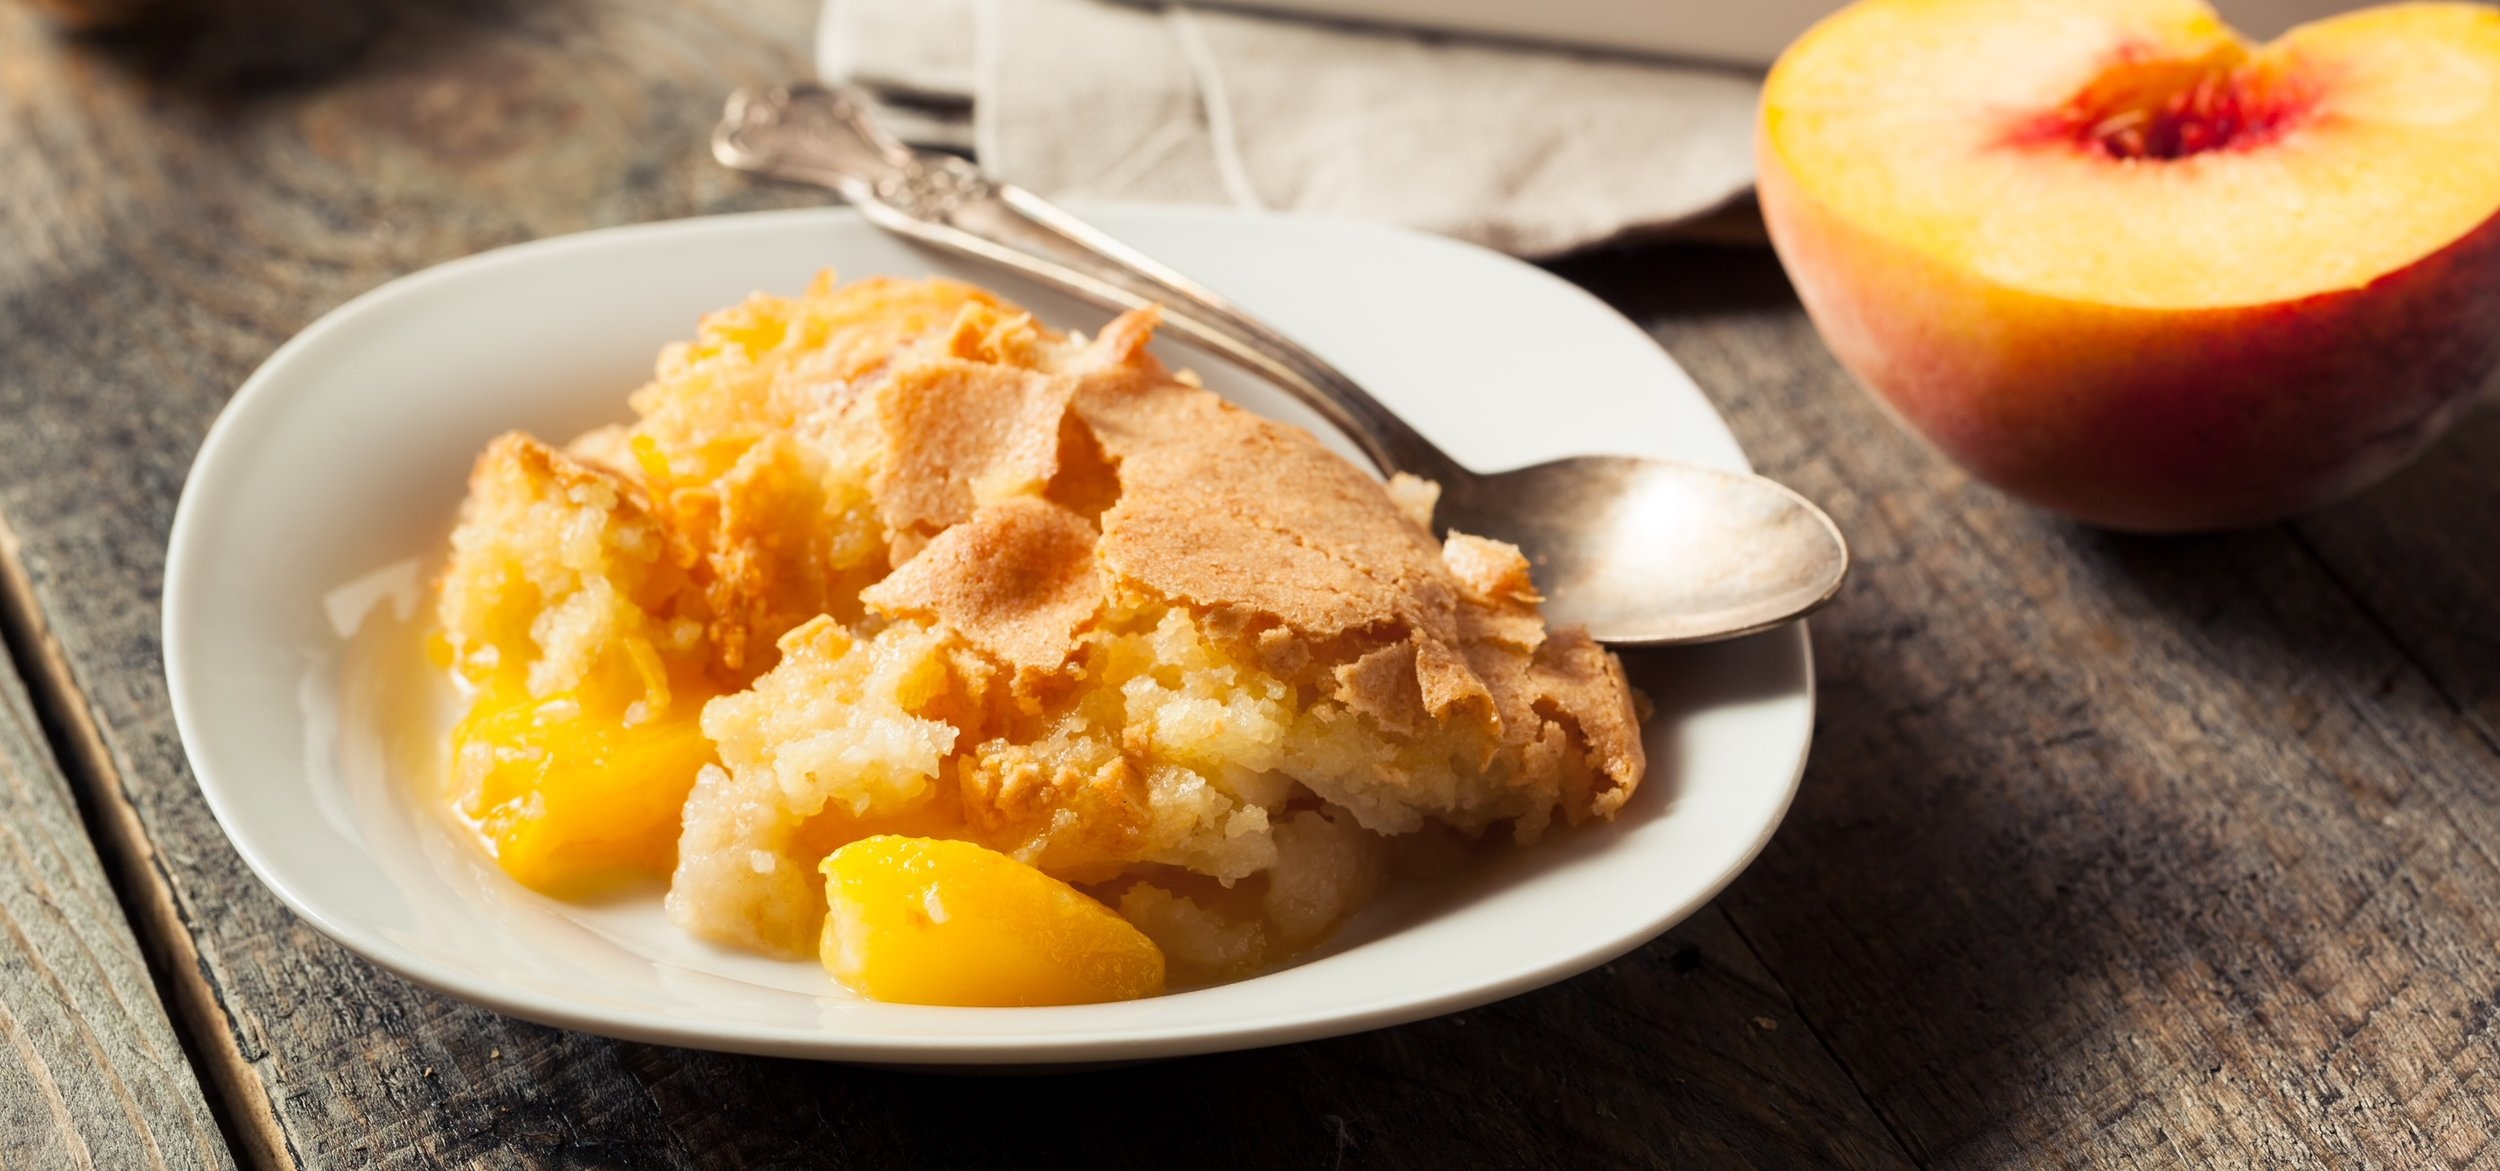 Peach Cobbler - A California peach is a thing of beauty to eat fresh from the tree, but it also makes people smile when baked into a cobbler.